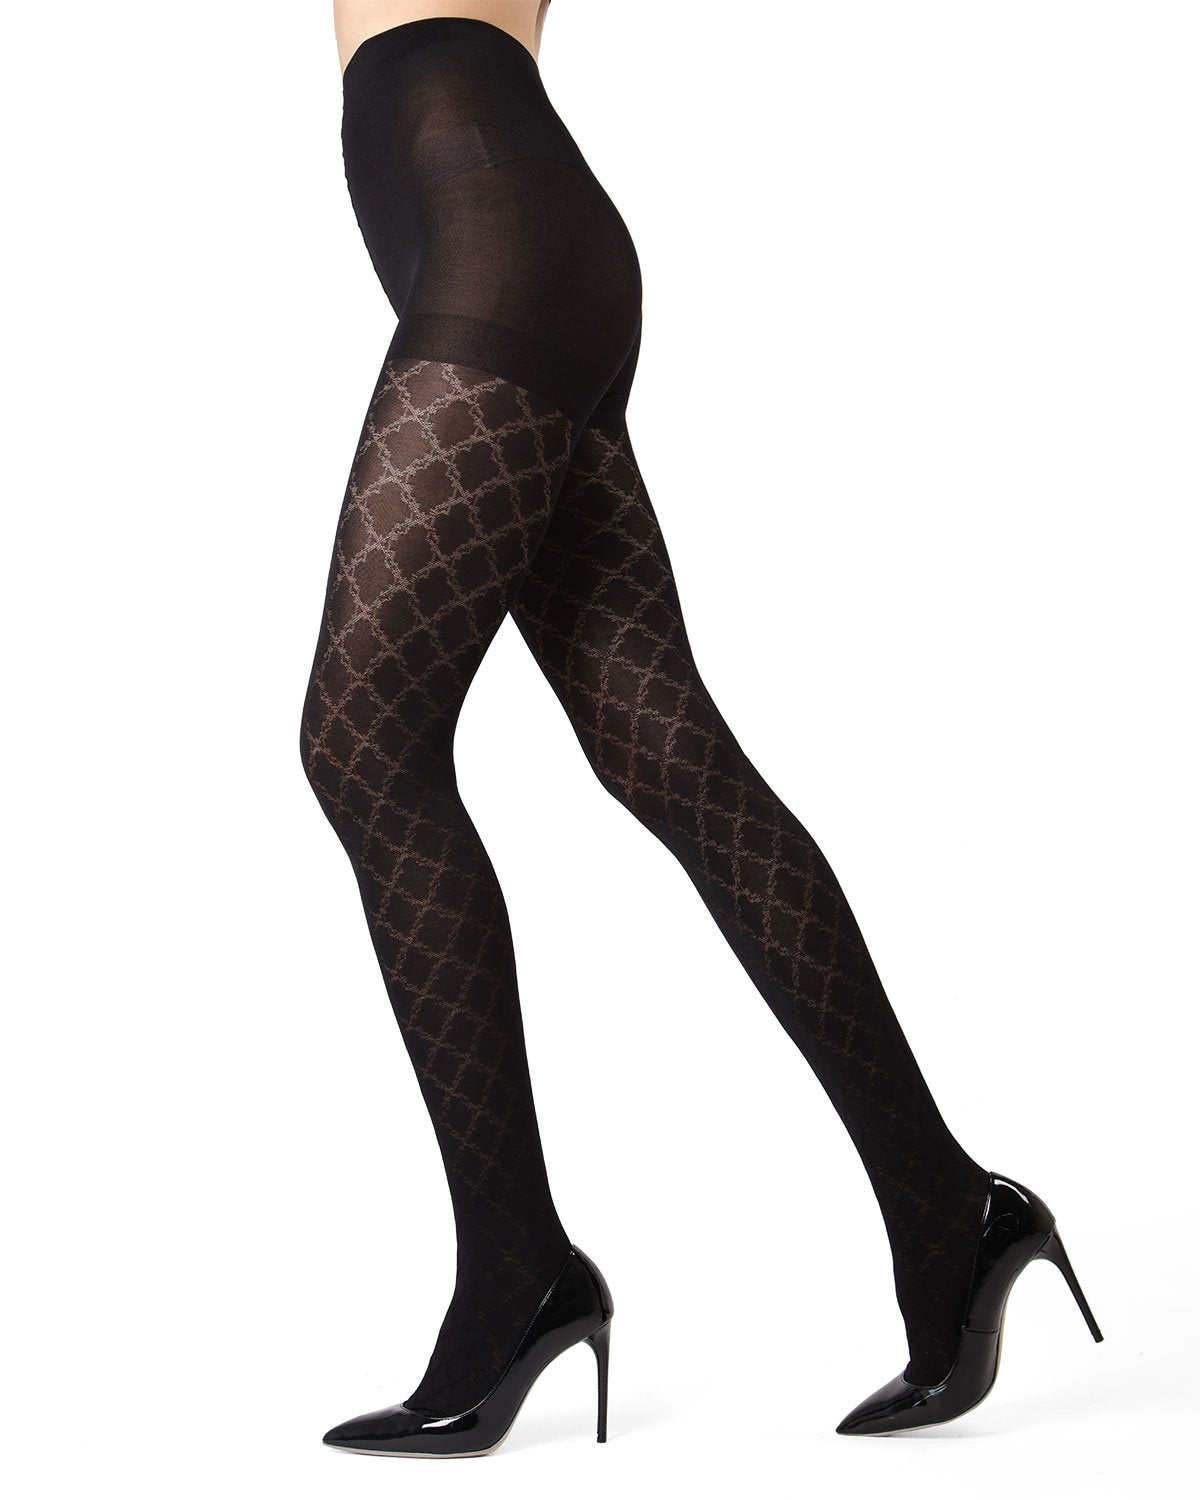 Cloudpoint Tights